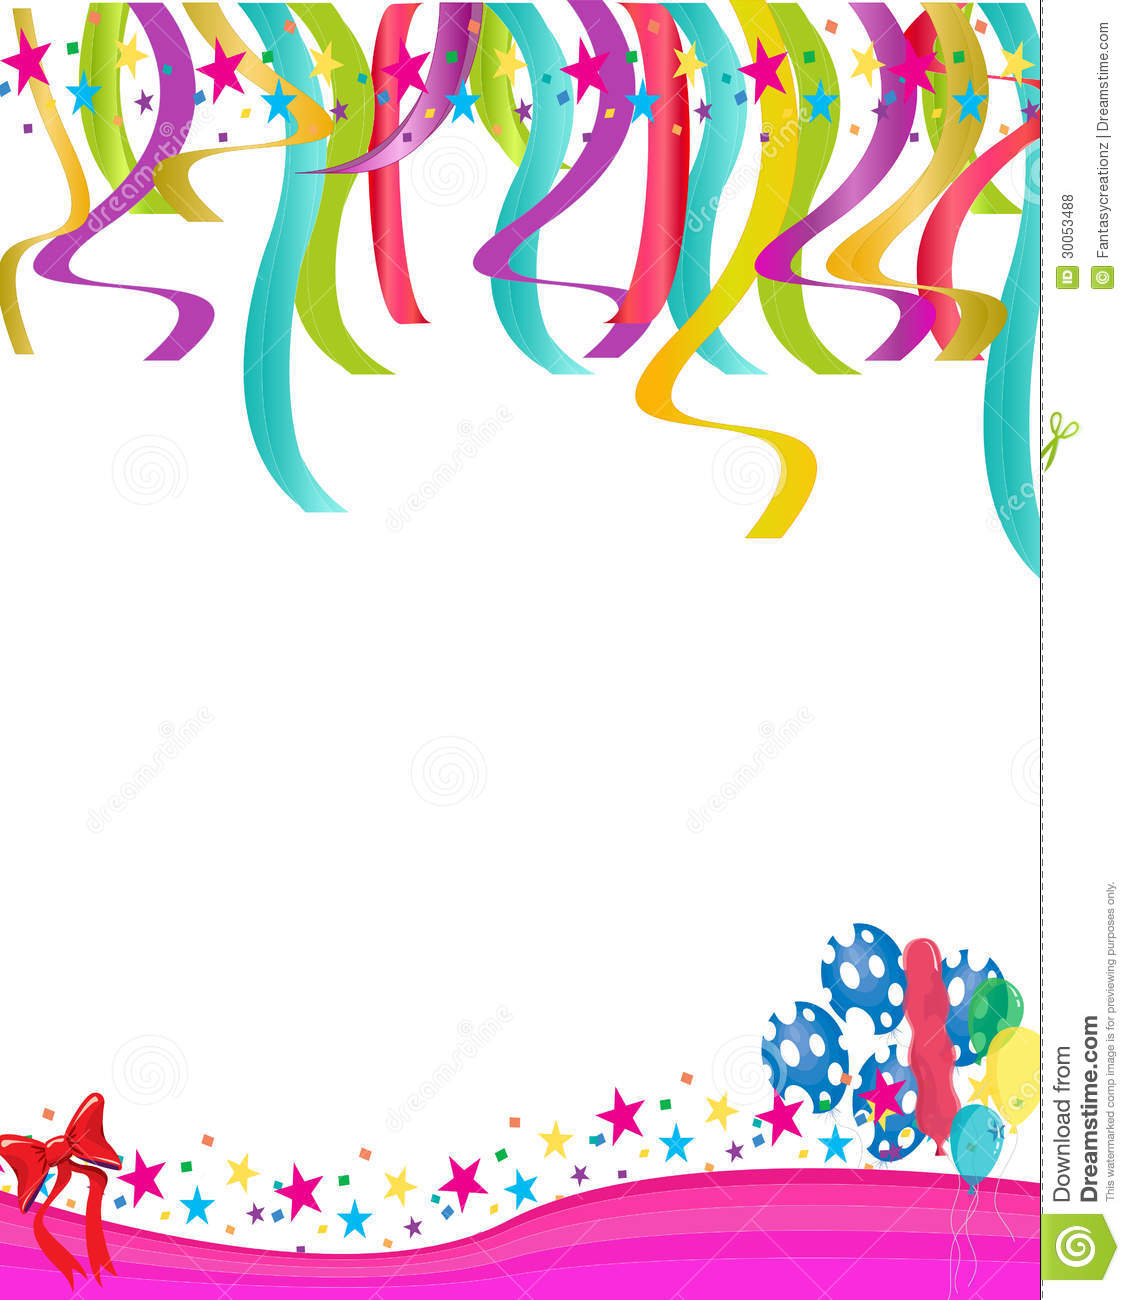 colorful birthday invitations ; colorful-balloons-statrs-illustration-birthday-cards-party-invitations-backgrounds-30053488